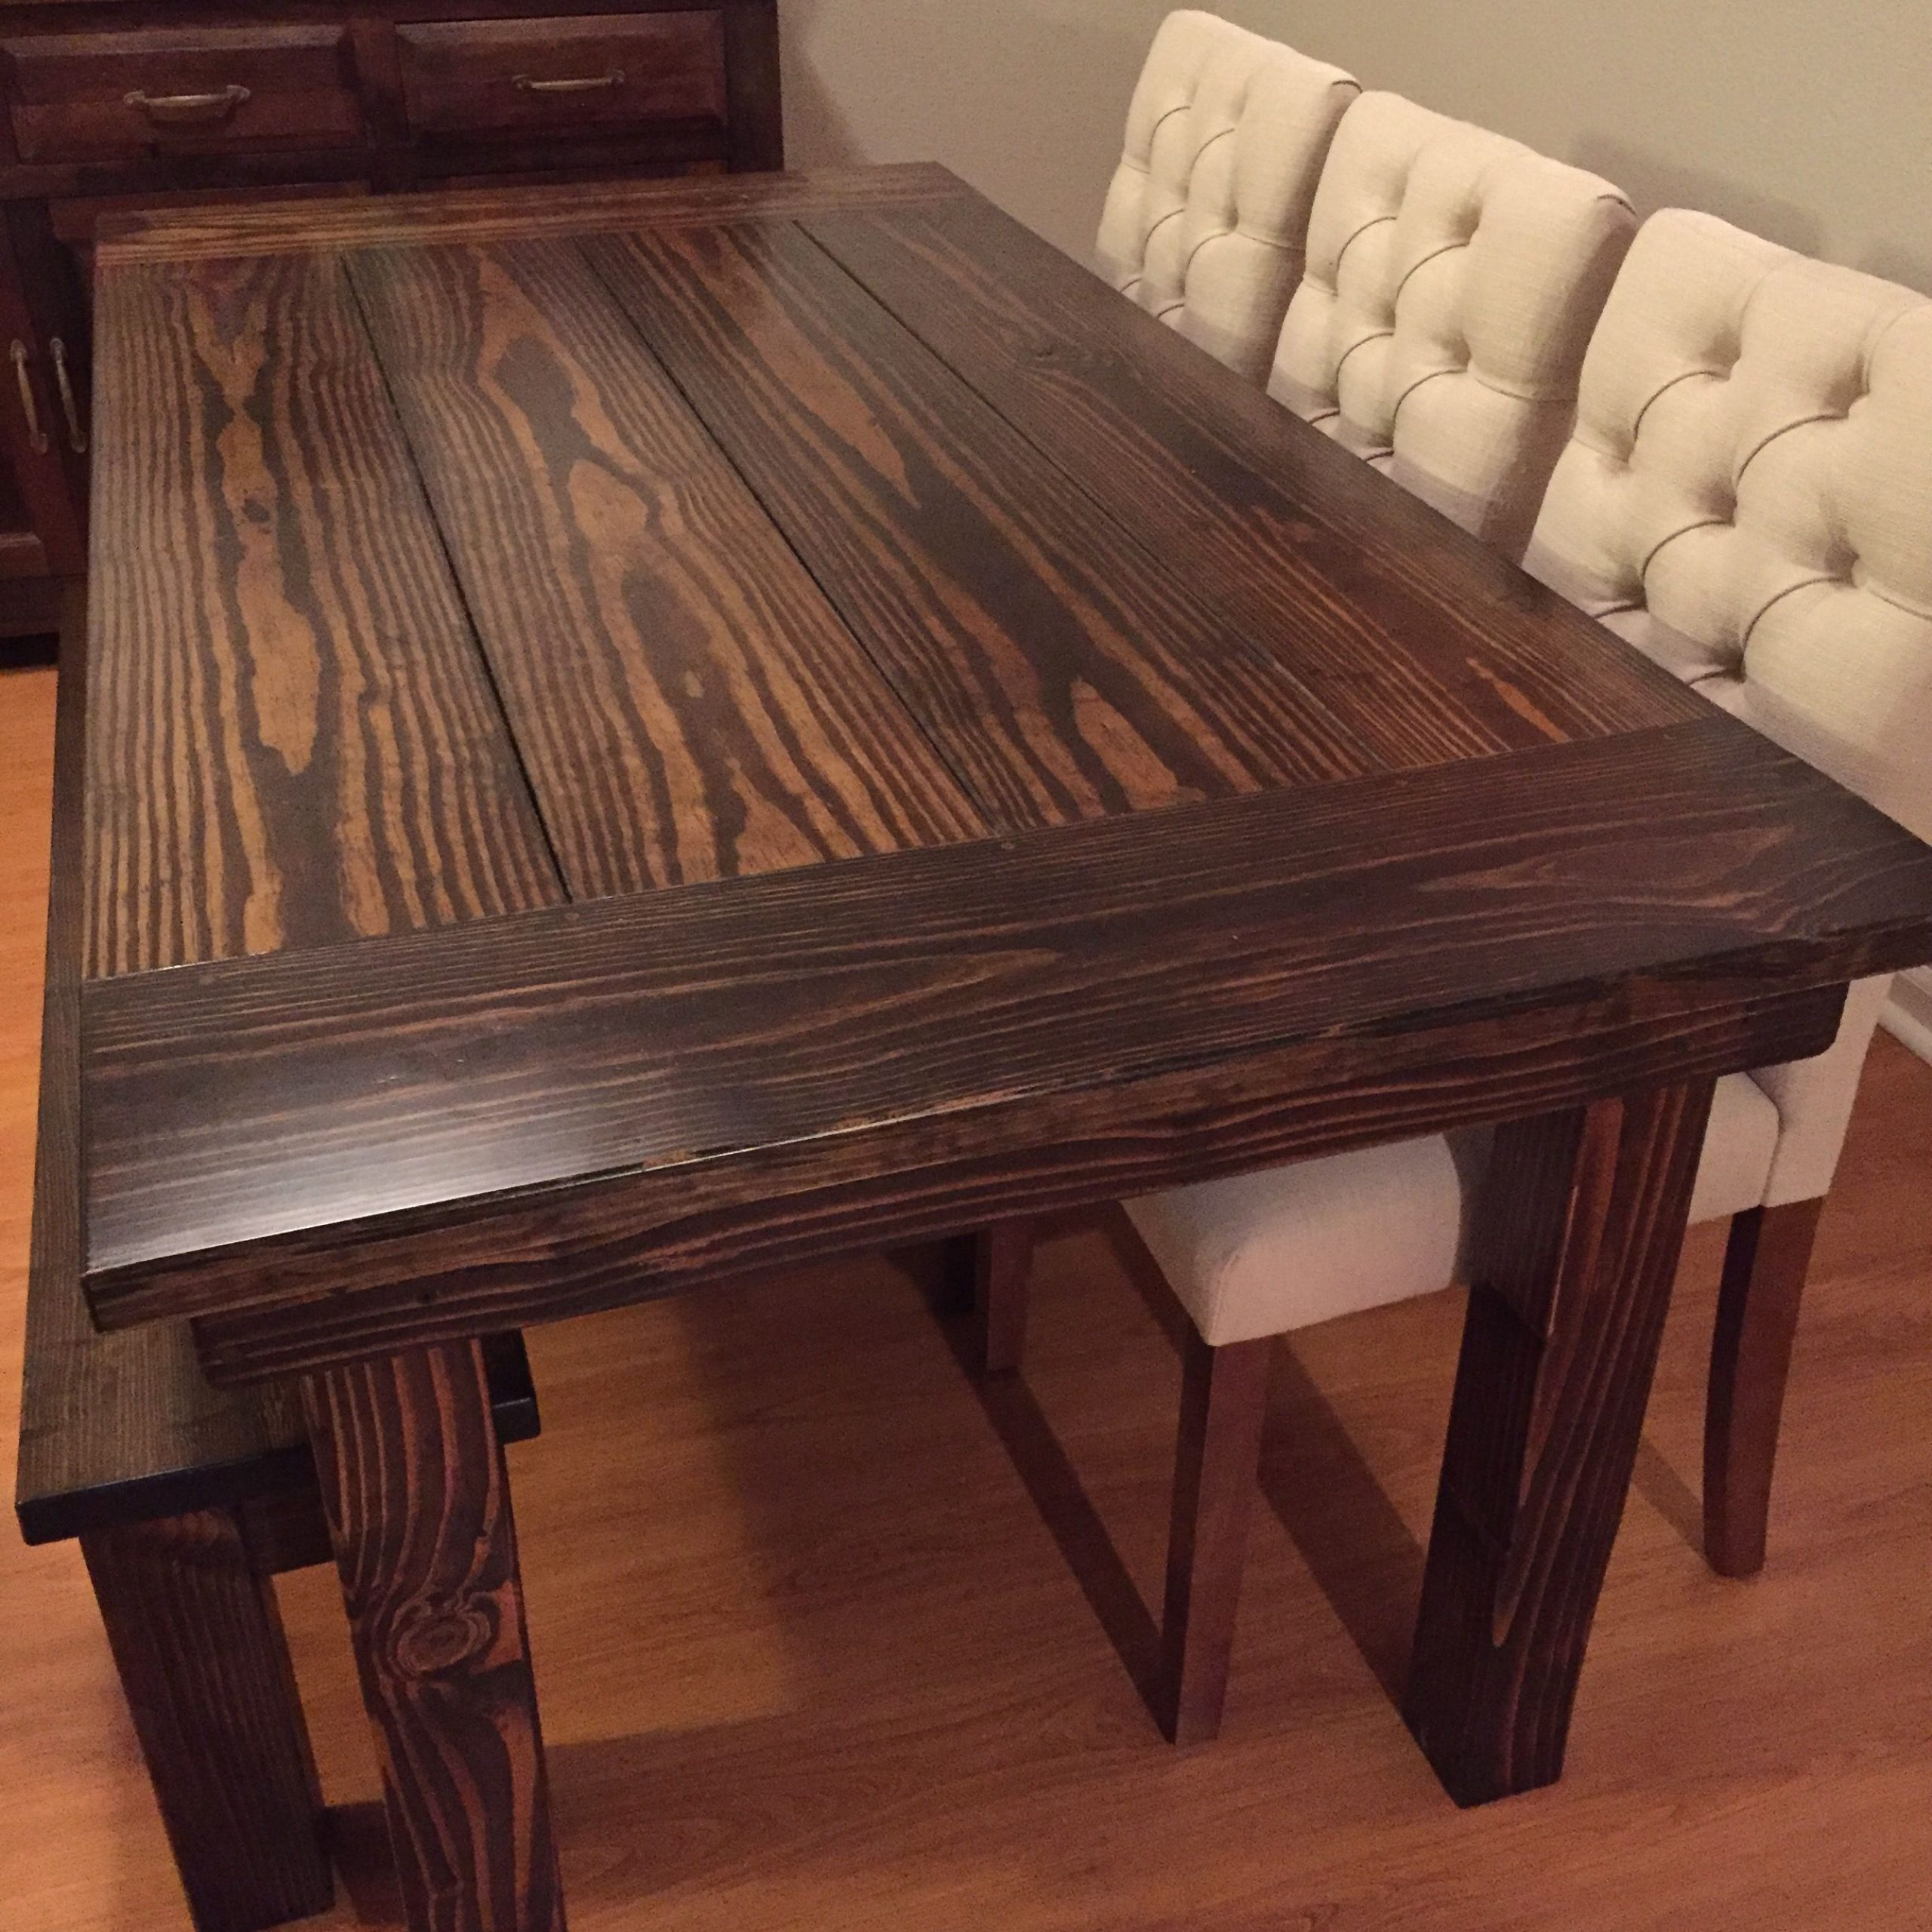 Fashionable Farmhouse Table (View 6 of 30)